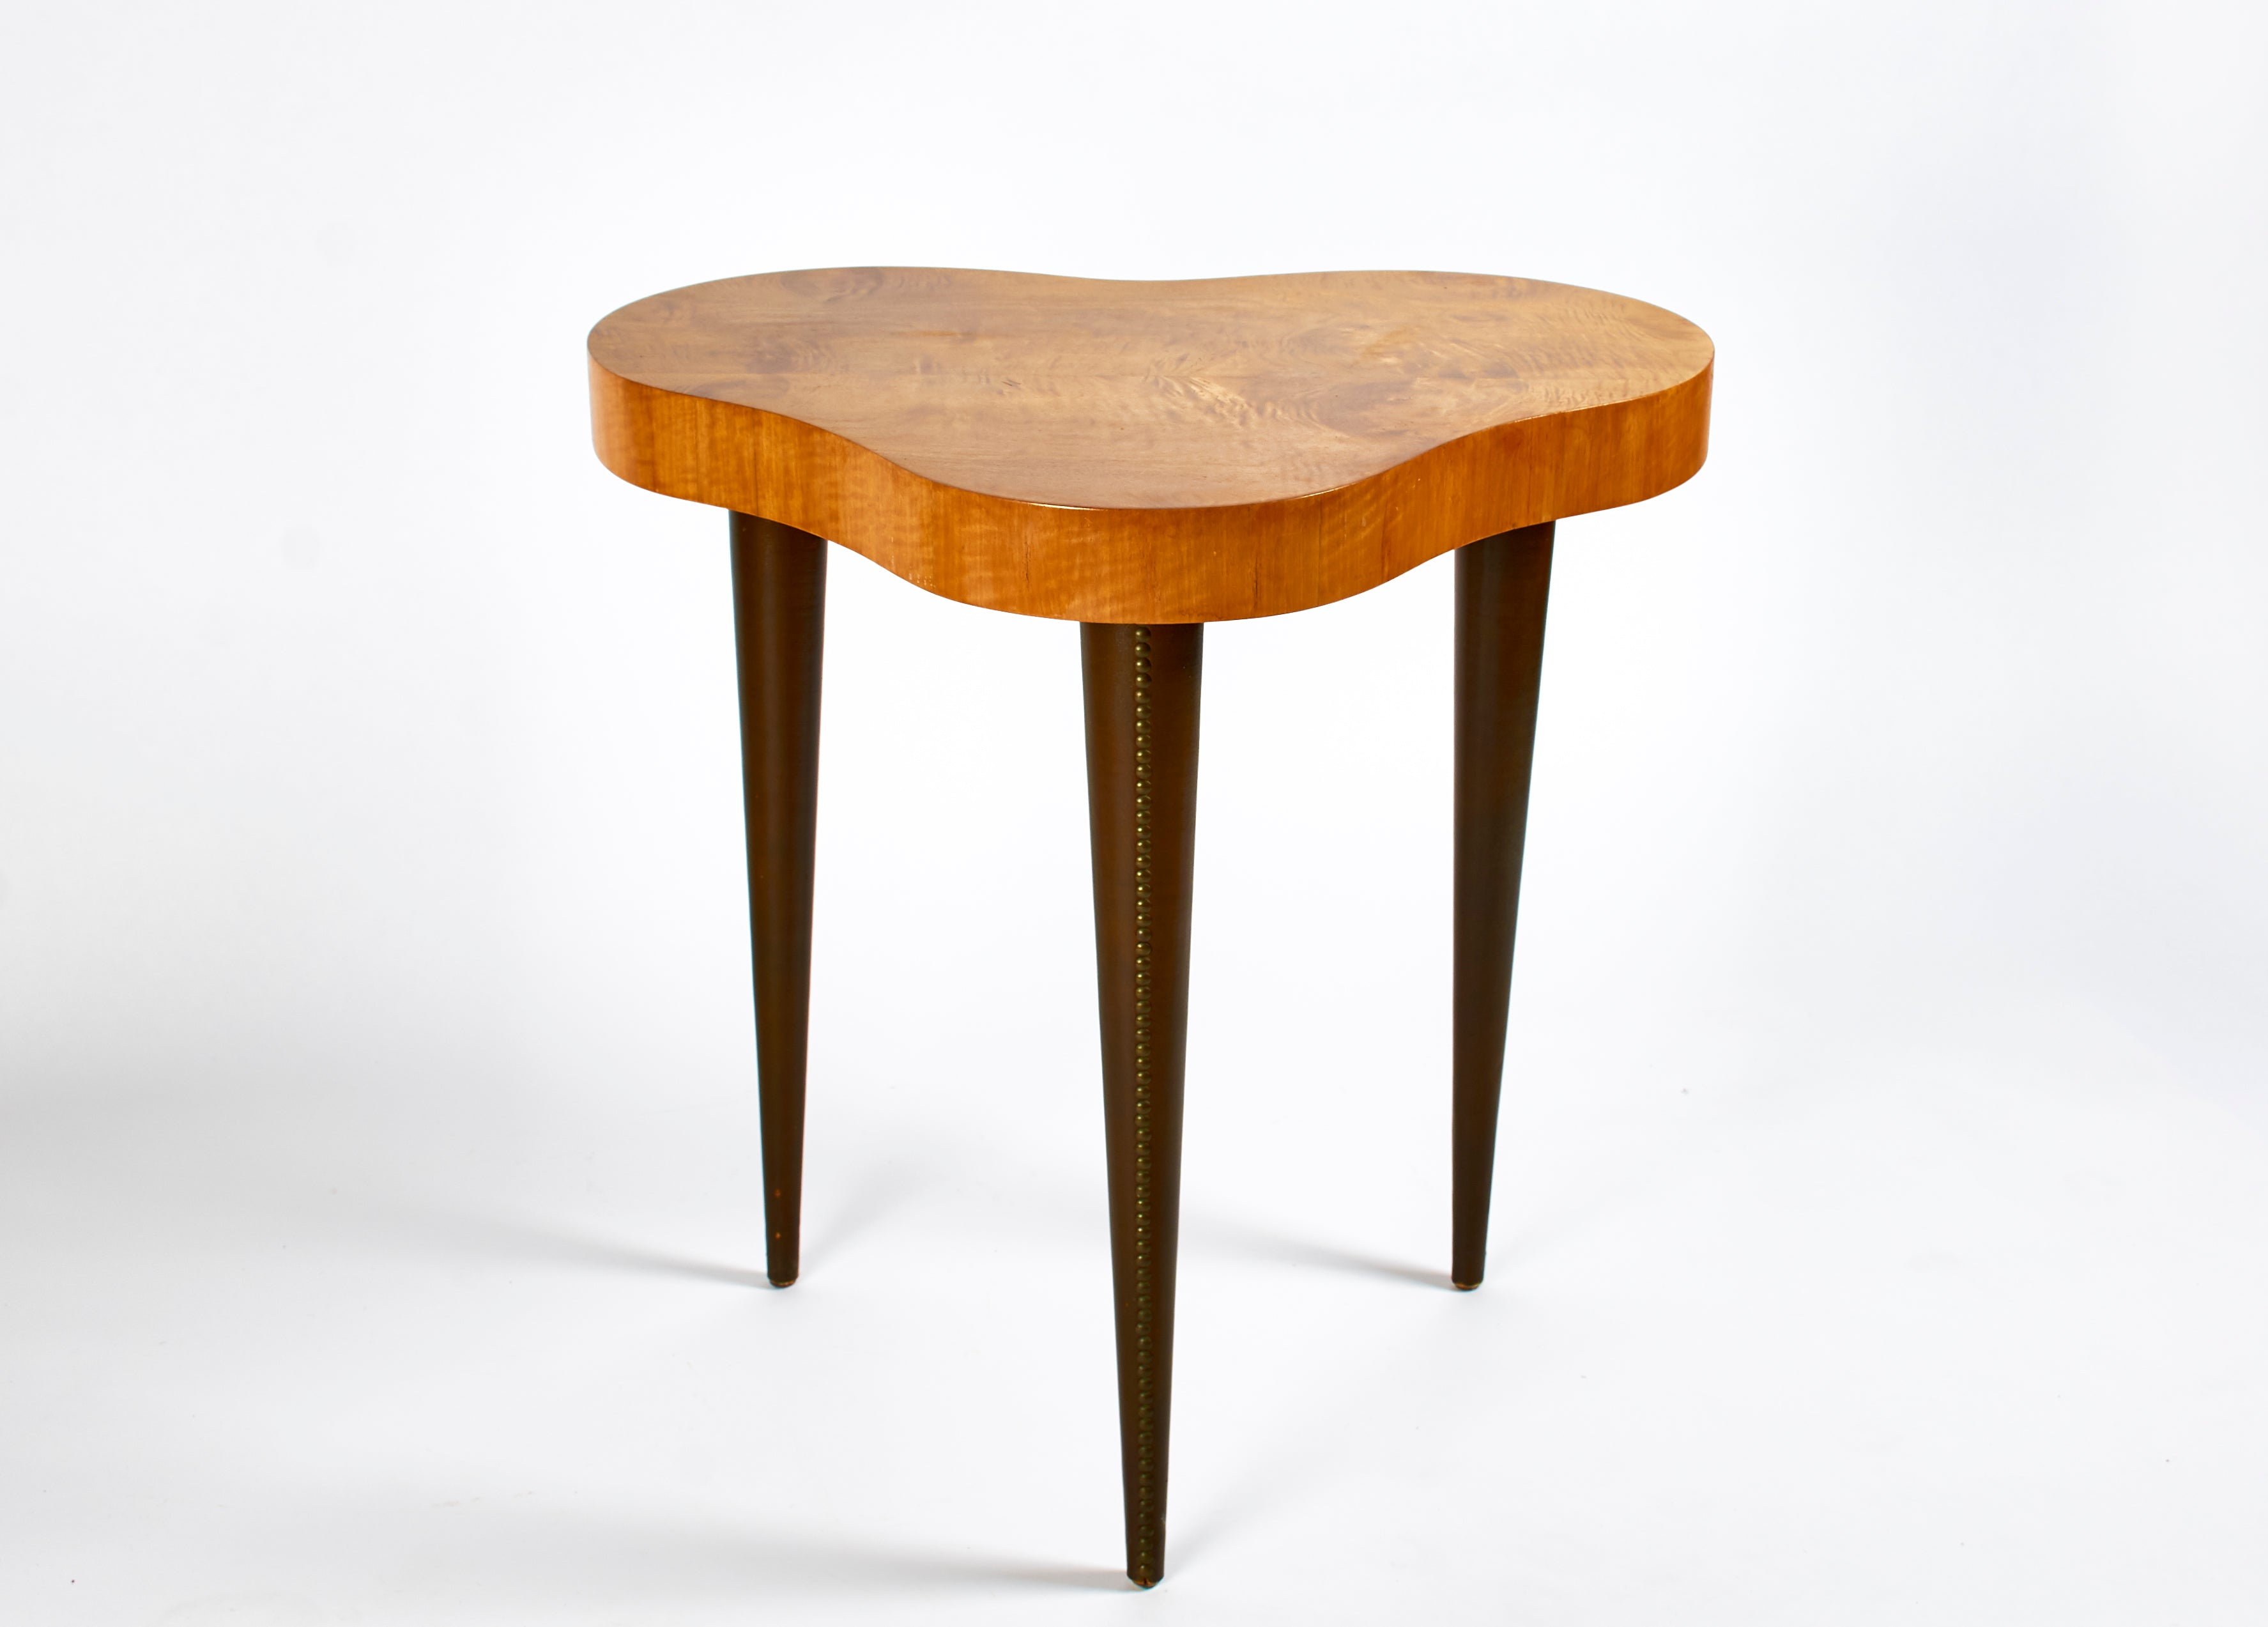 Gilbert Rohde Table with Burl Surace Model 4187 circa 1941